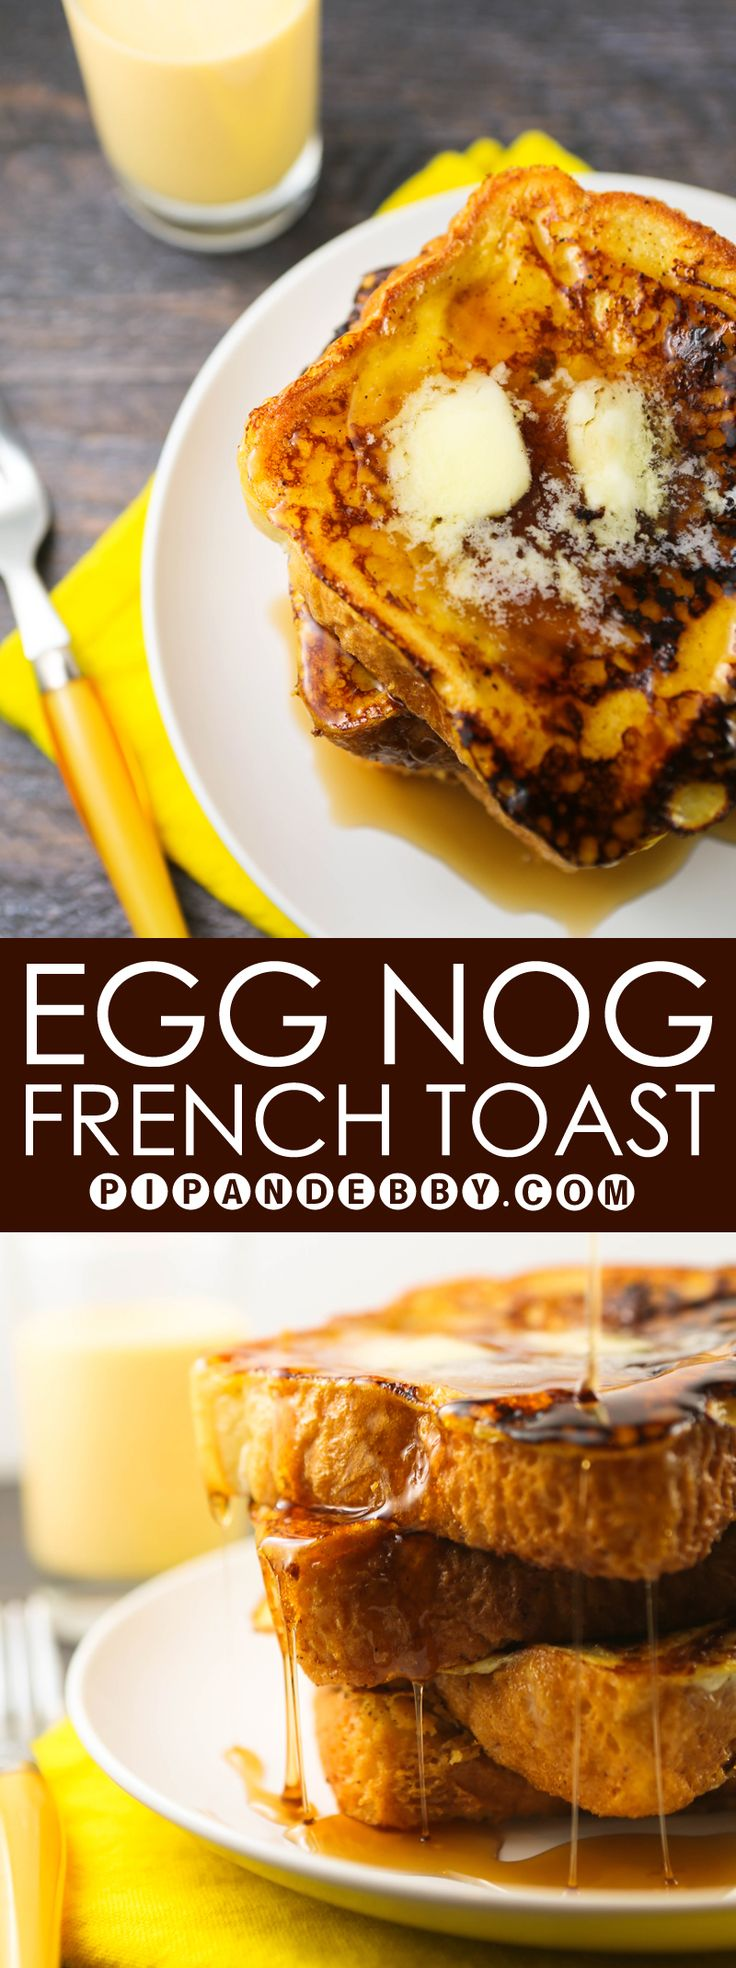 Egg Nog French Toast | A fun and festive way to use up Egg Nog this season! #breakfast